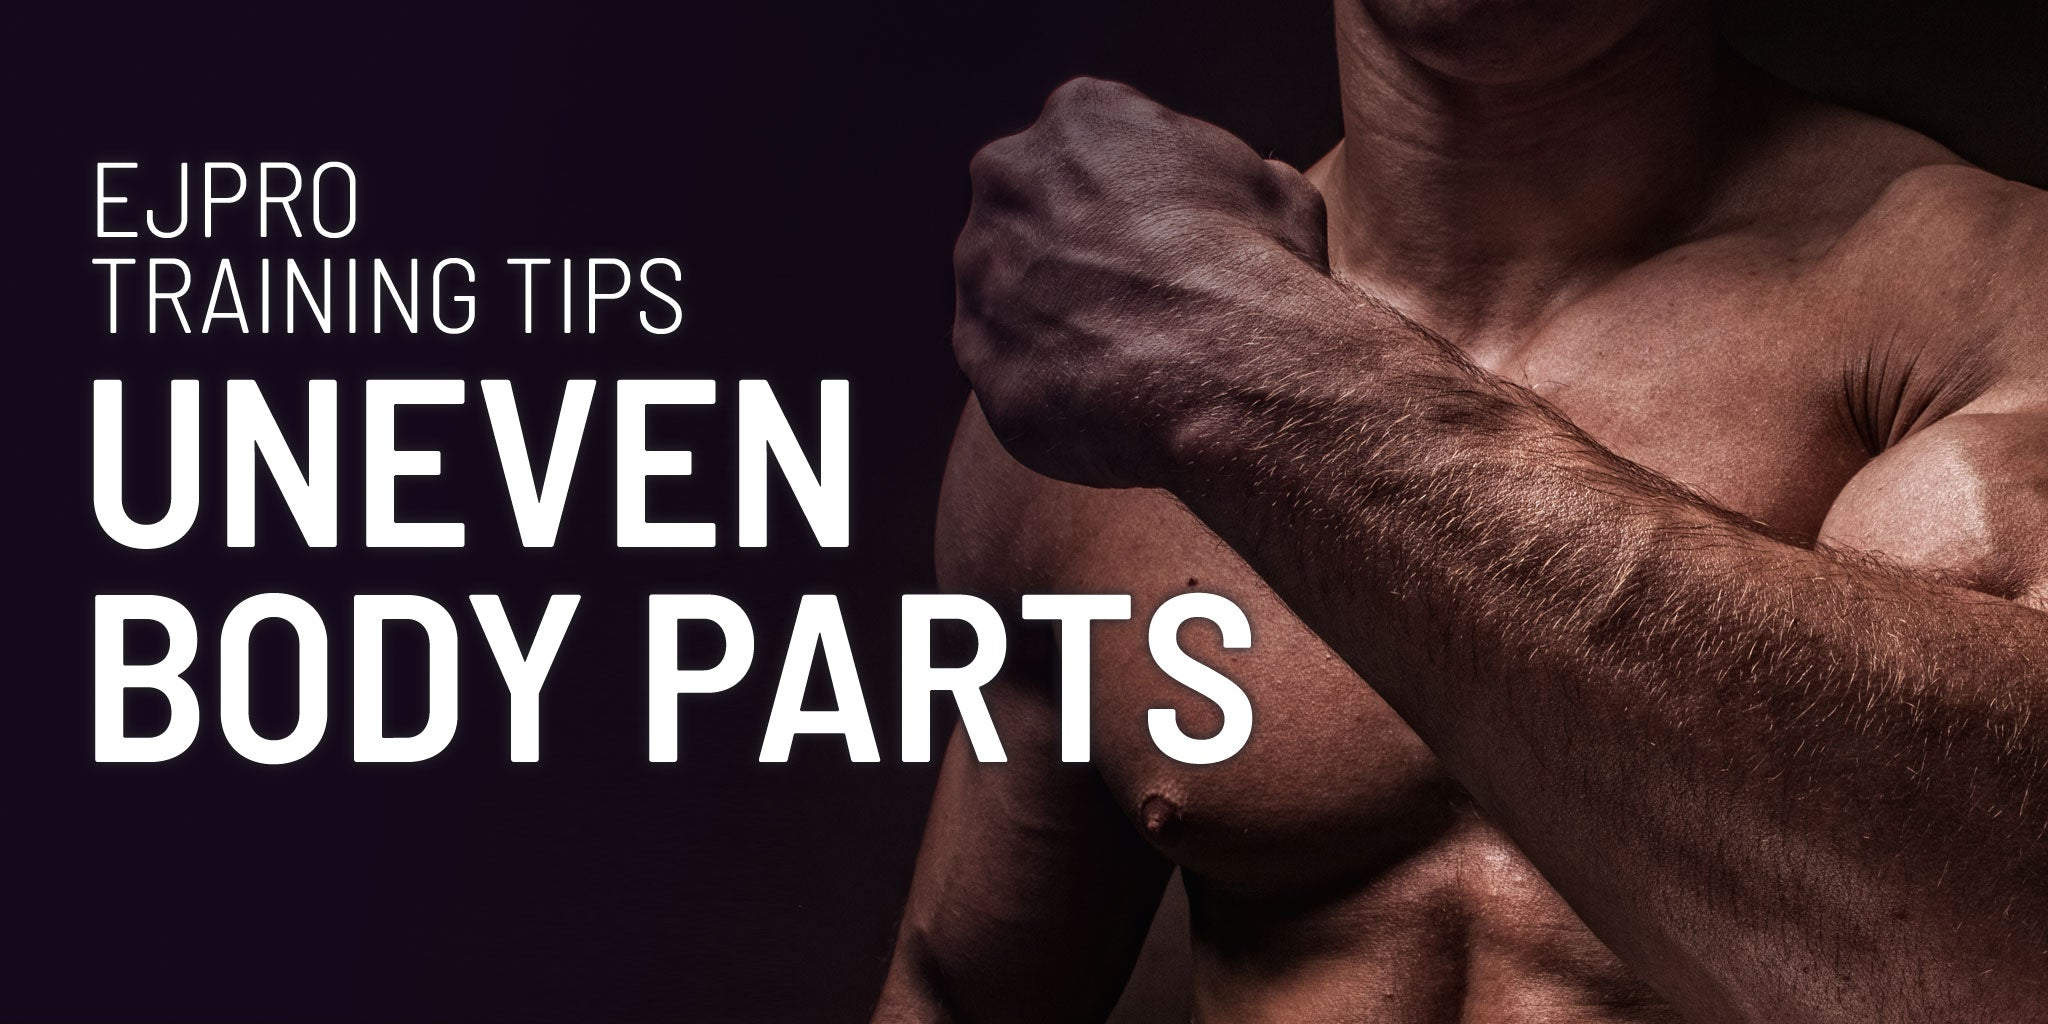 EJPRO Training tips - Uneven Body Parts